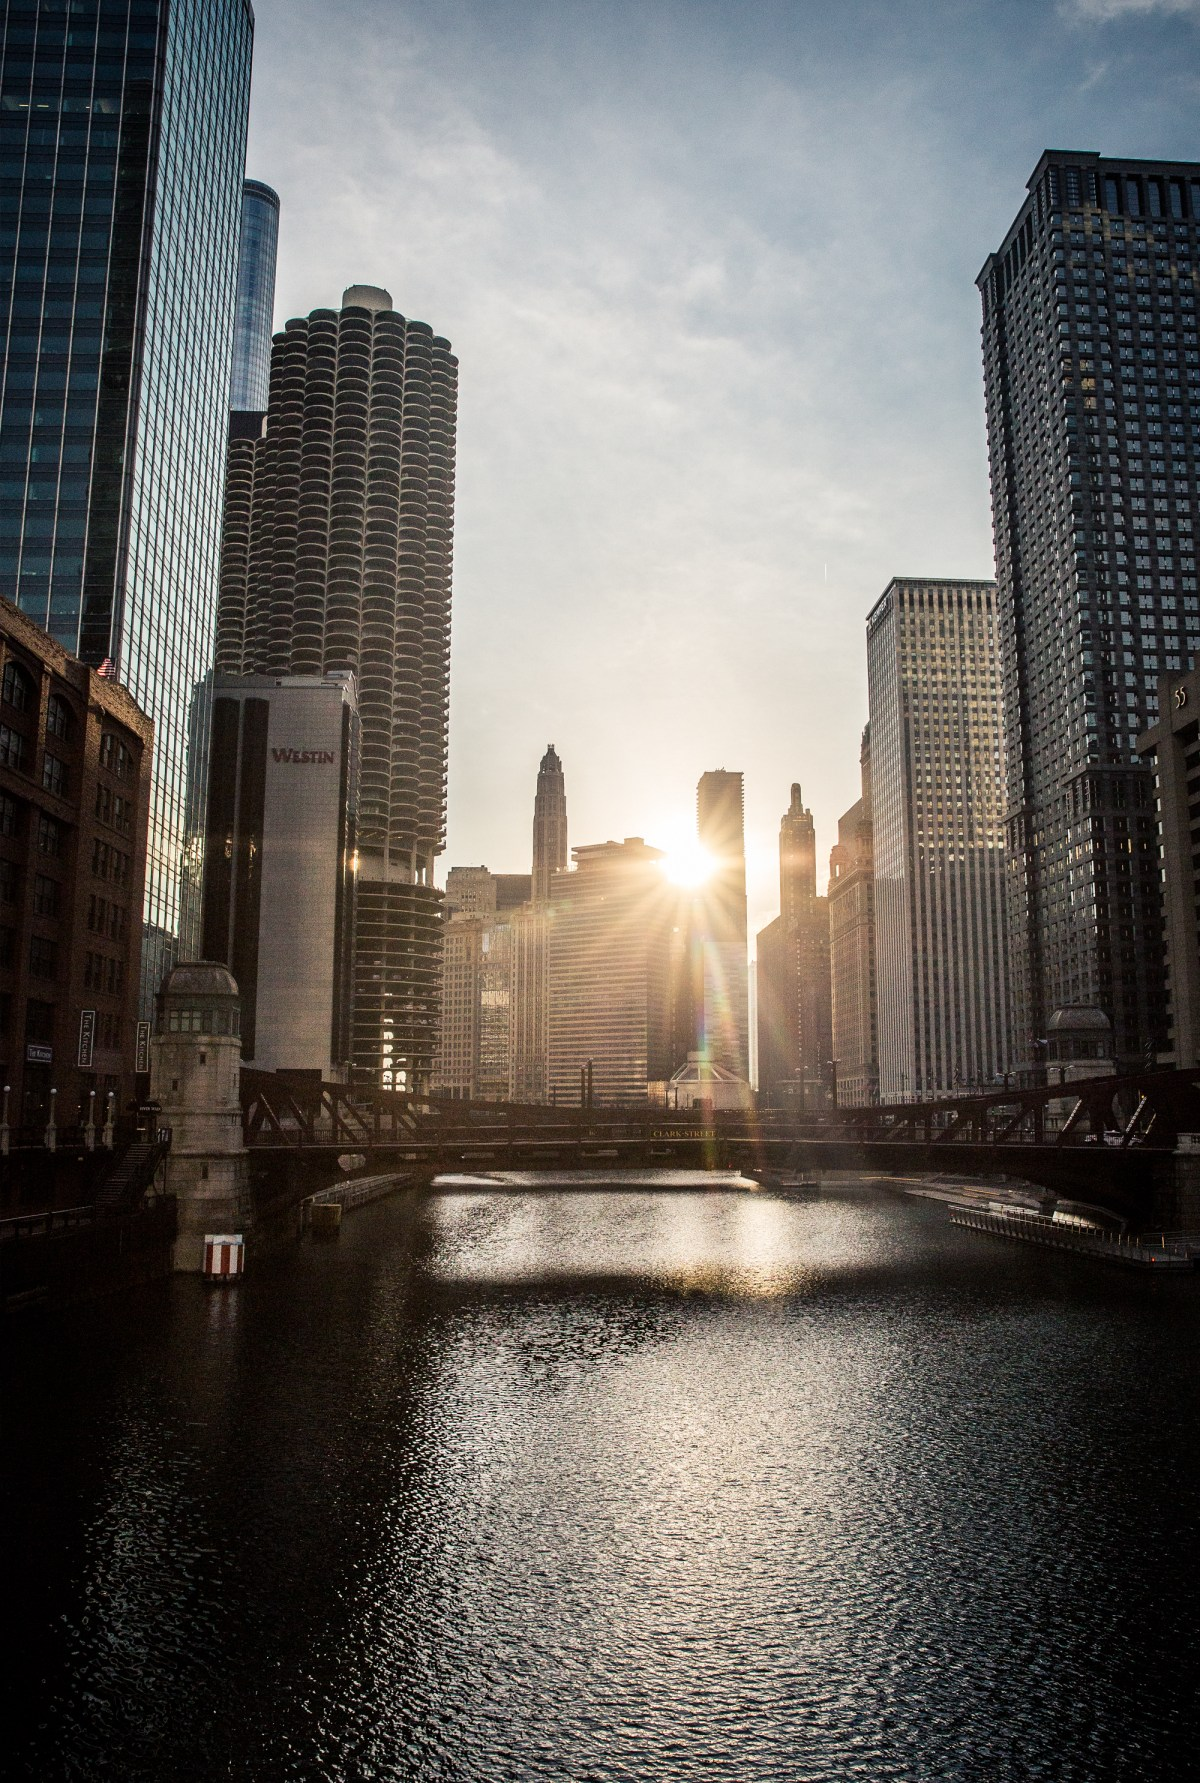 Sunrise at Chicago River